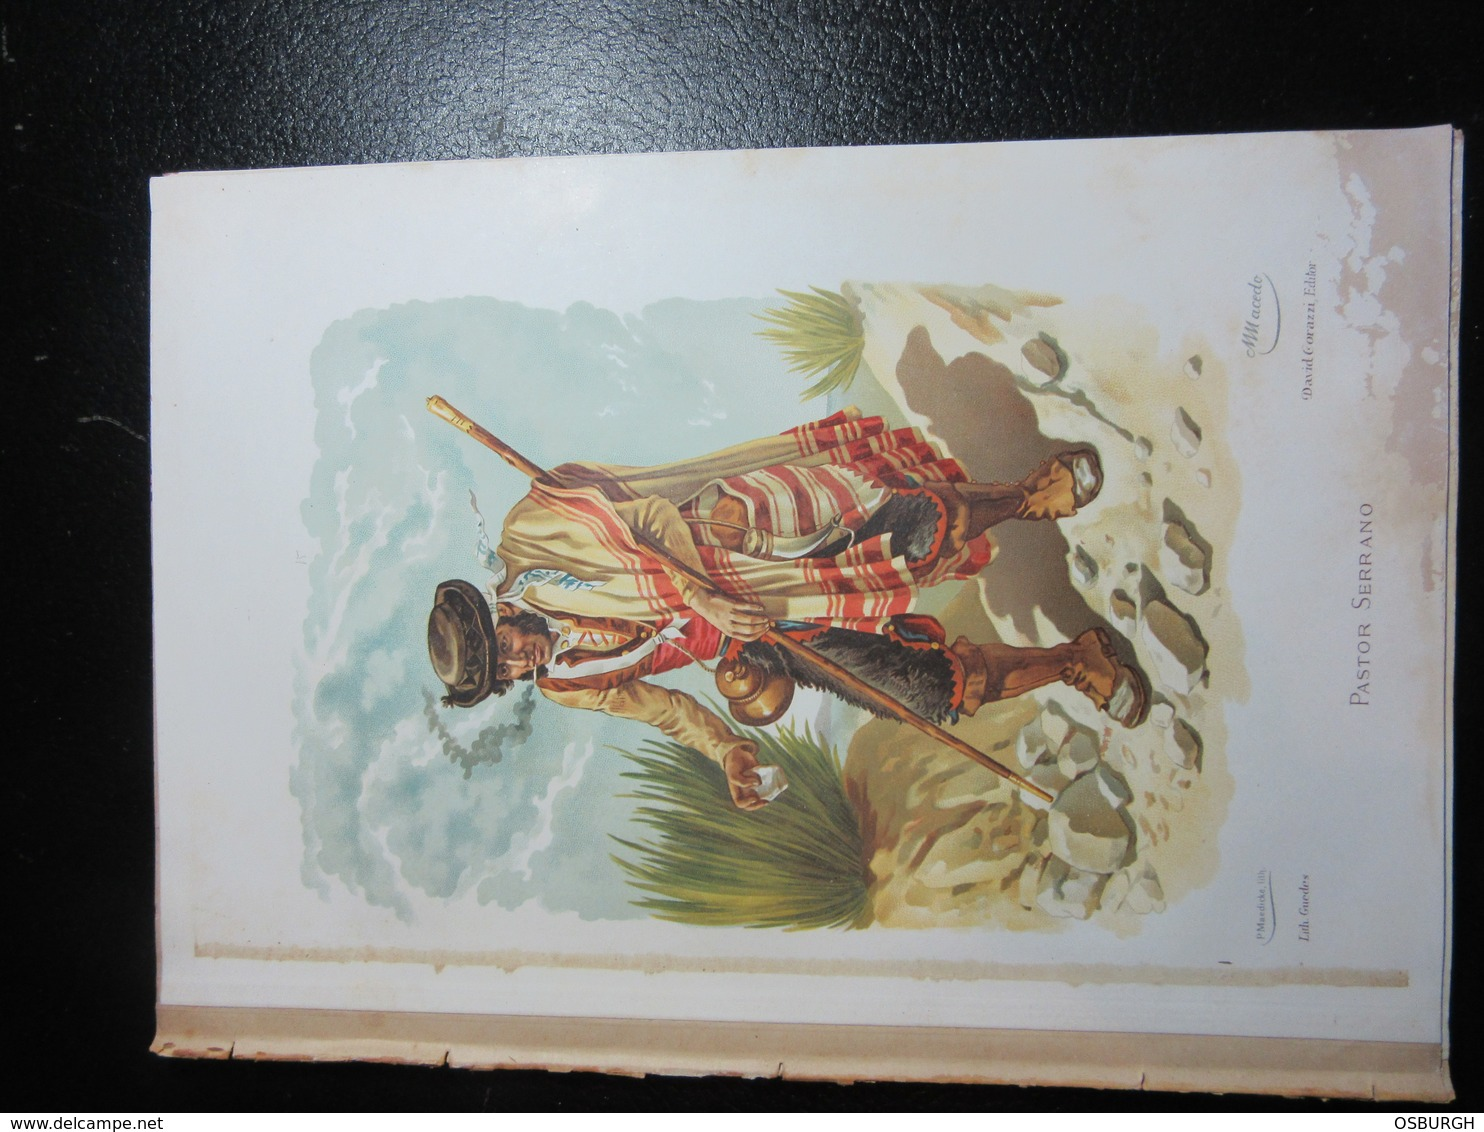 PORTUGAL. COLOUR PRINT. LOCAL COSTUMES. M MACEDO. PASTOR SERANNO. REMOVED FROM A BOOK - Prints & Engravings